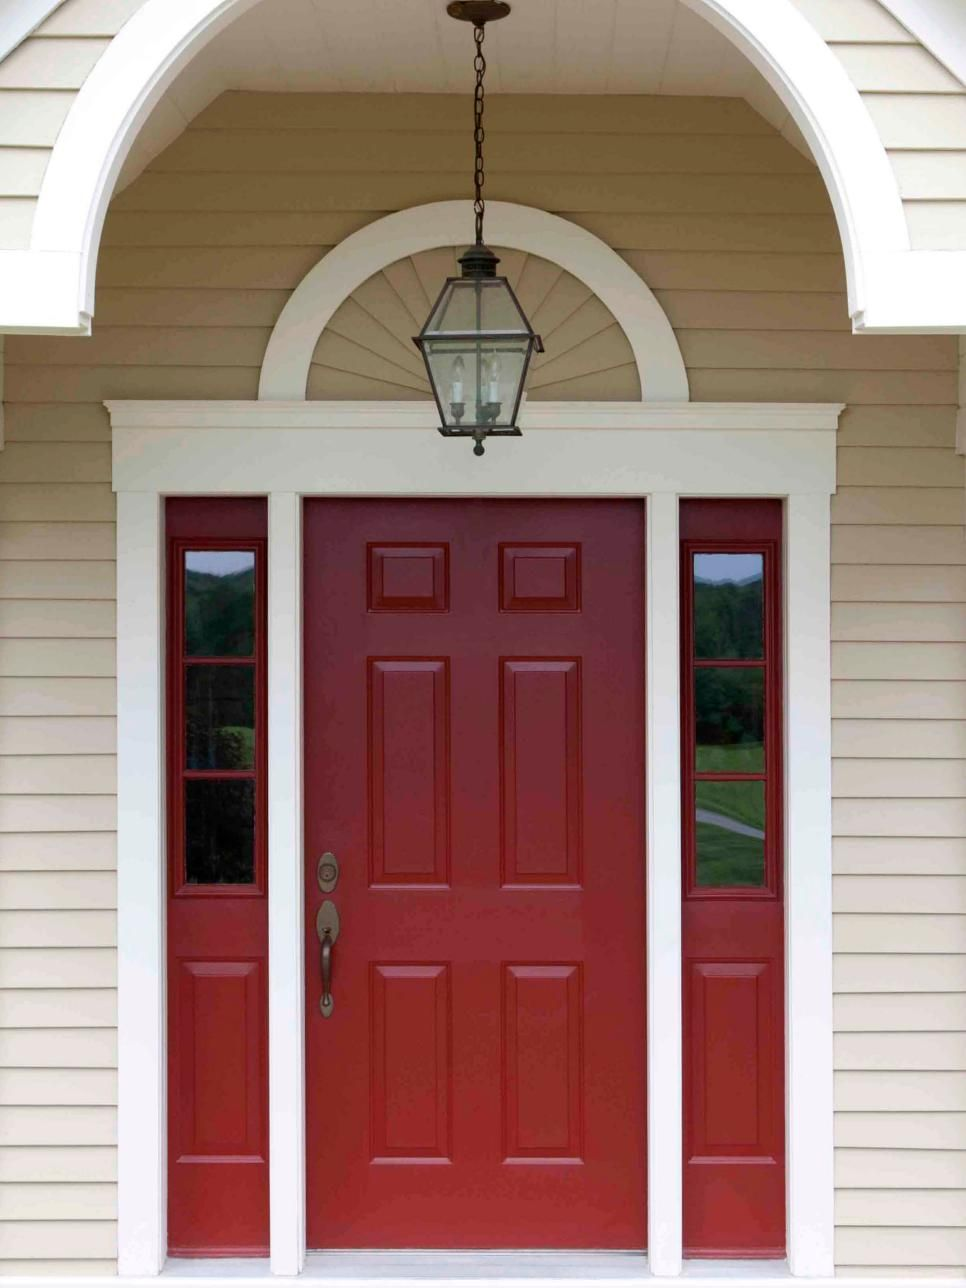 Popular Colors To Paint An Entry Door Curb Appeal Front